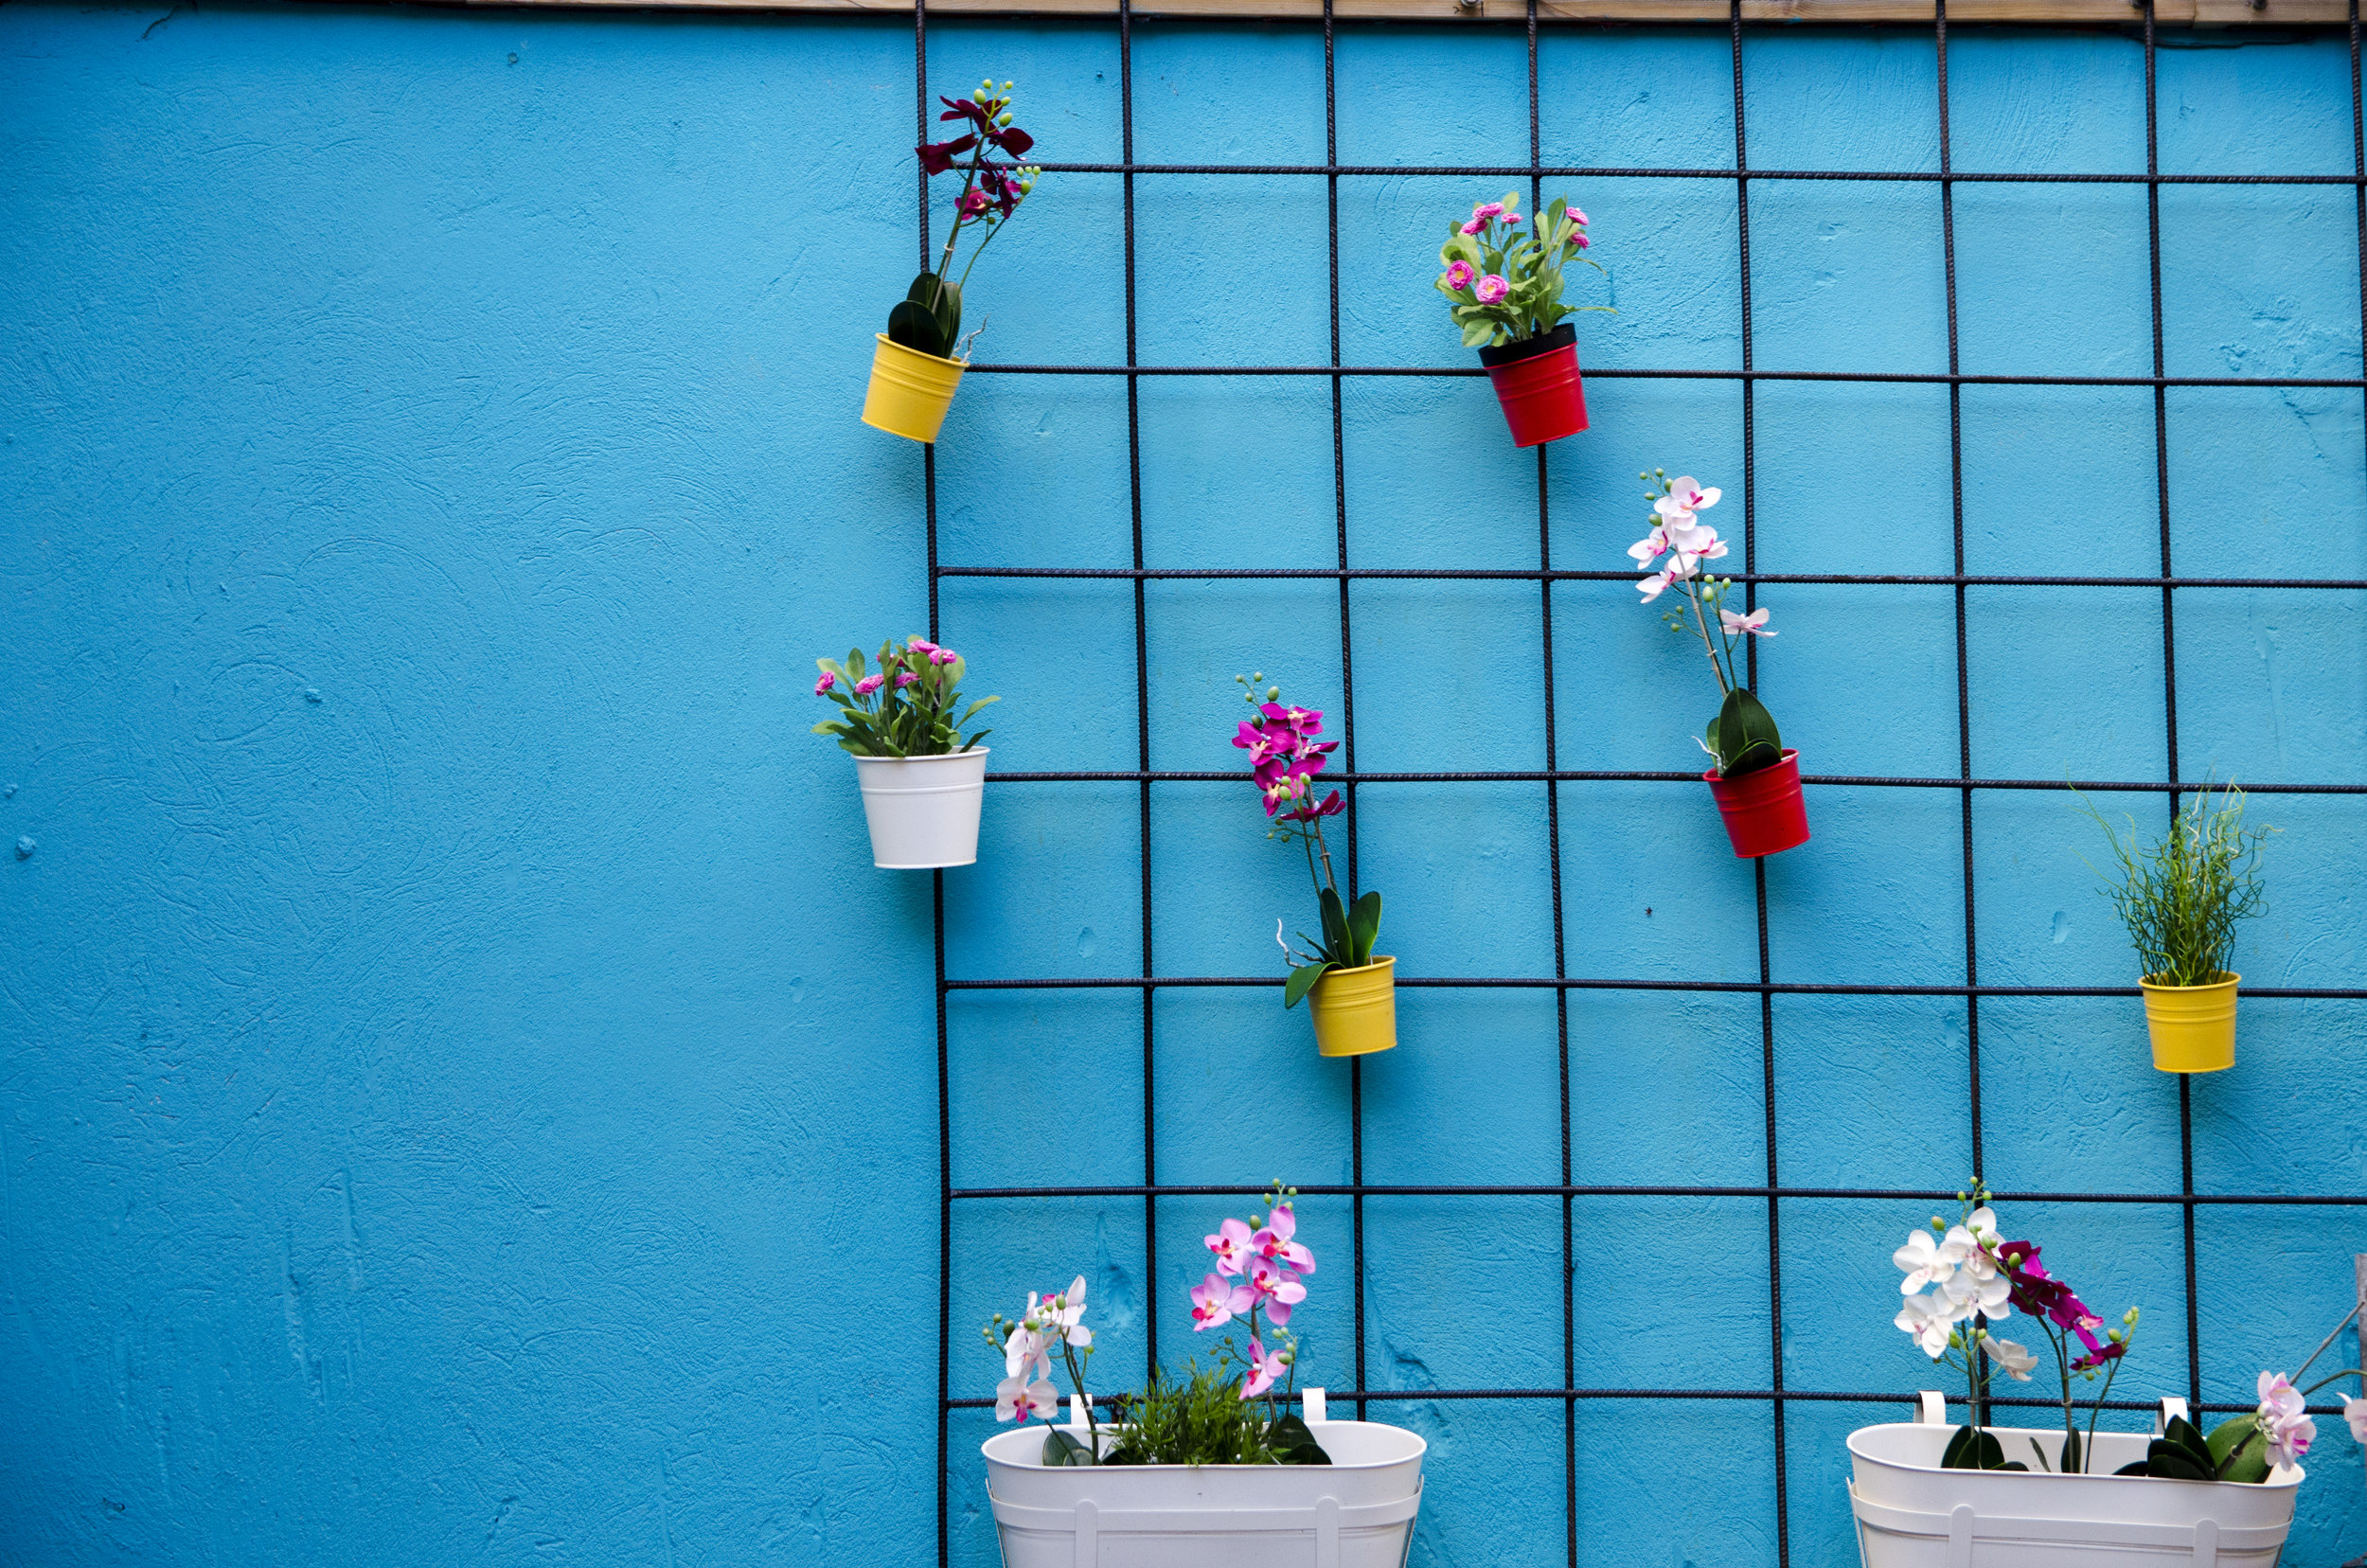 A wall of faux flowers hangs optimistically in the chilly winds of an  Icelandic winter.